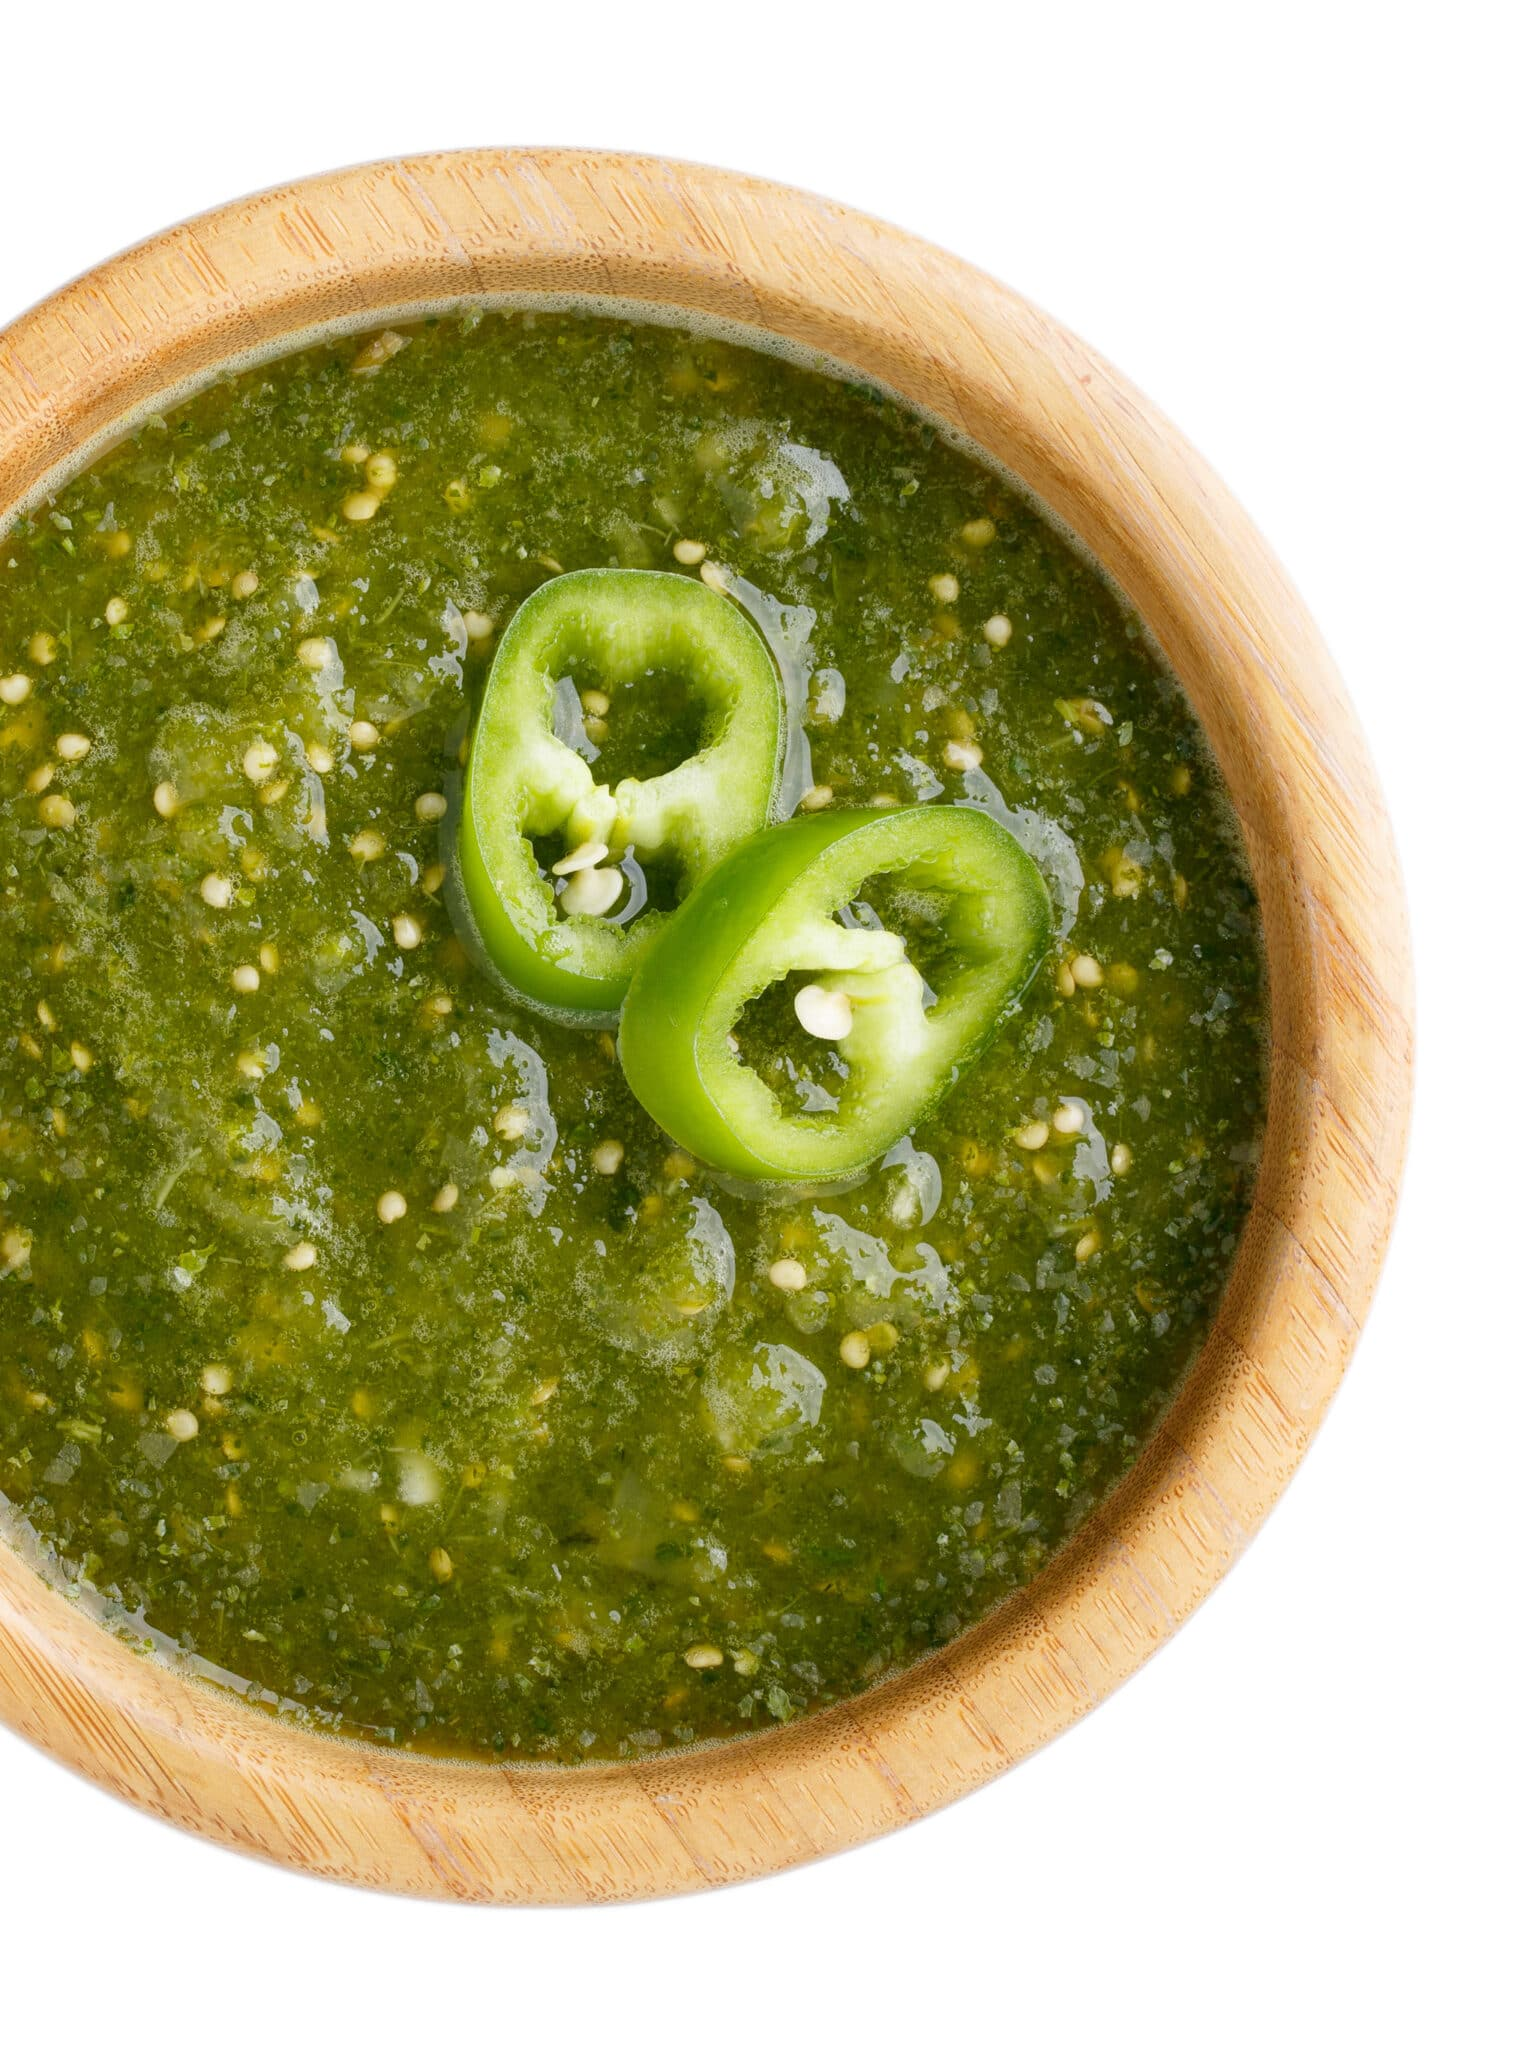 A bowl of green hotsauce with jalapeno slices.